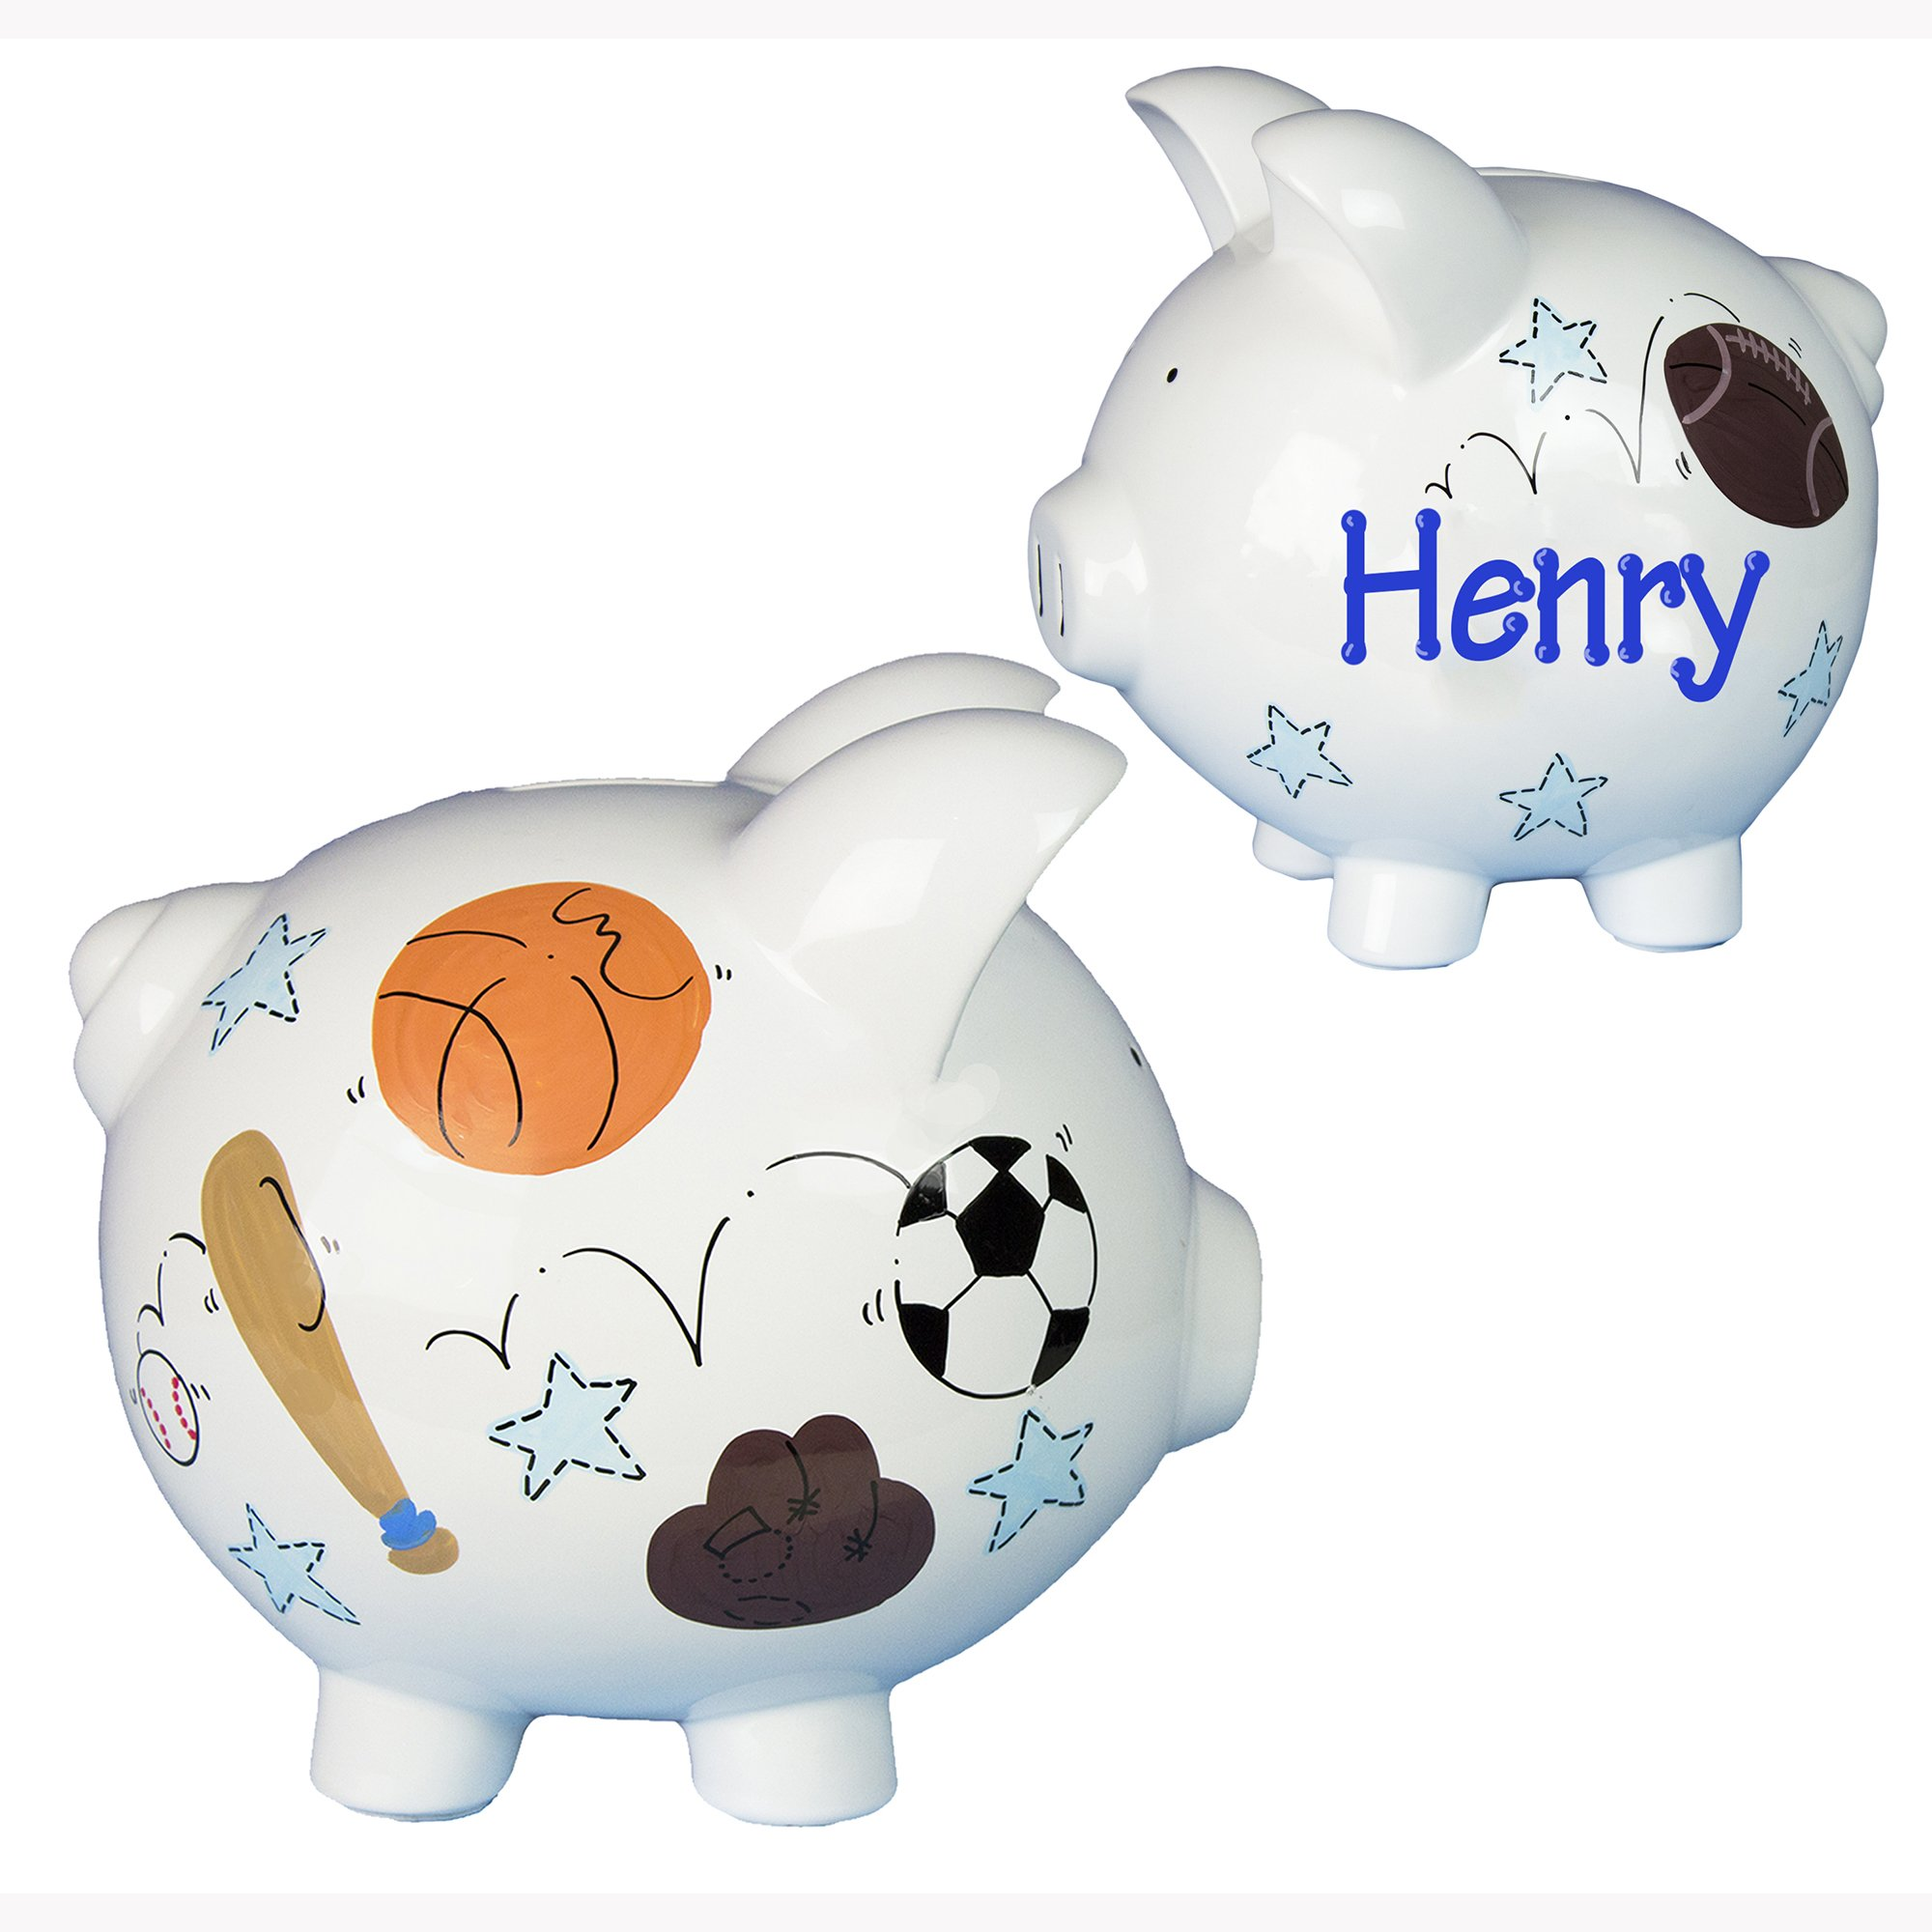 Personalized Sports Piggy Bank Hand Painted Large White Ceramic Piggybank by My Bambino - Soccer Football Basketball Baseball